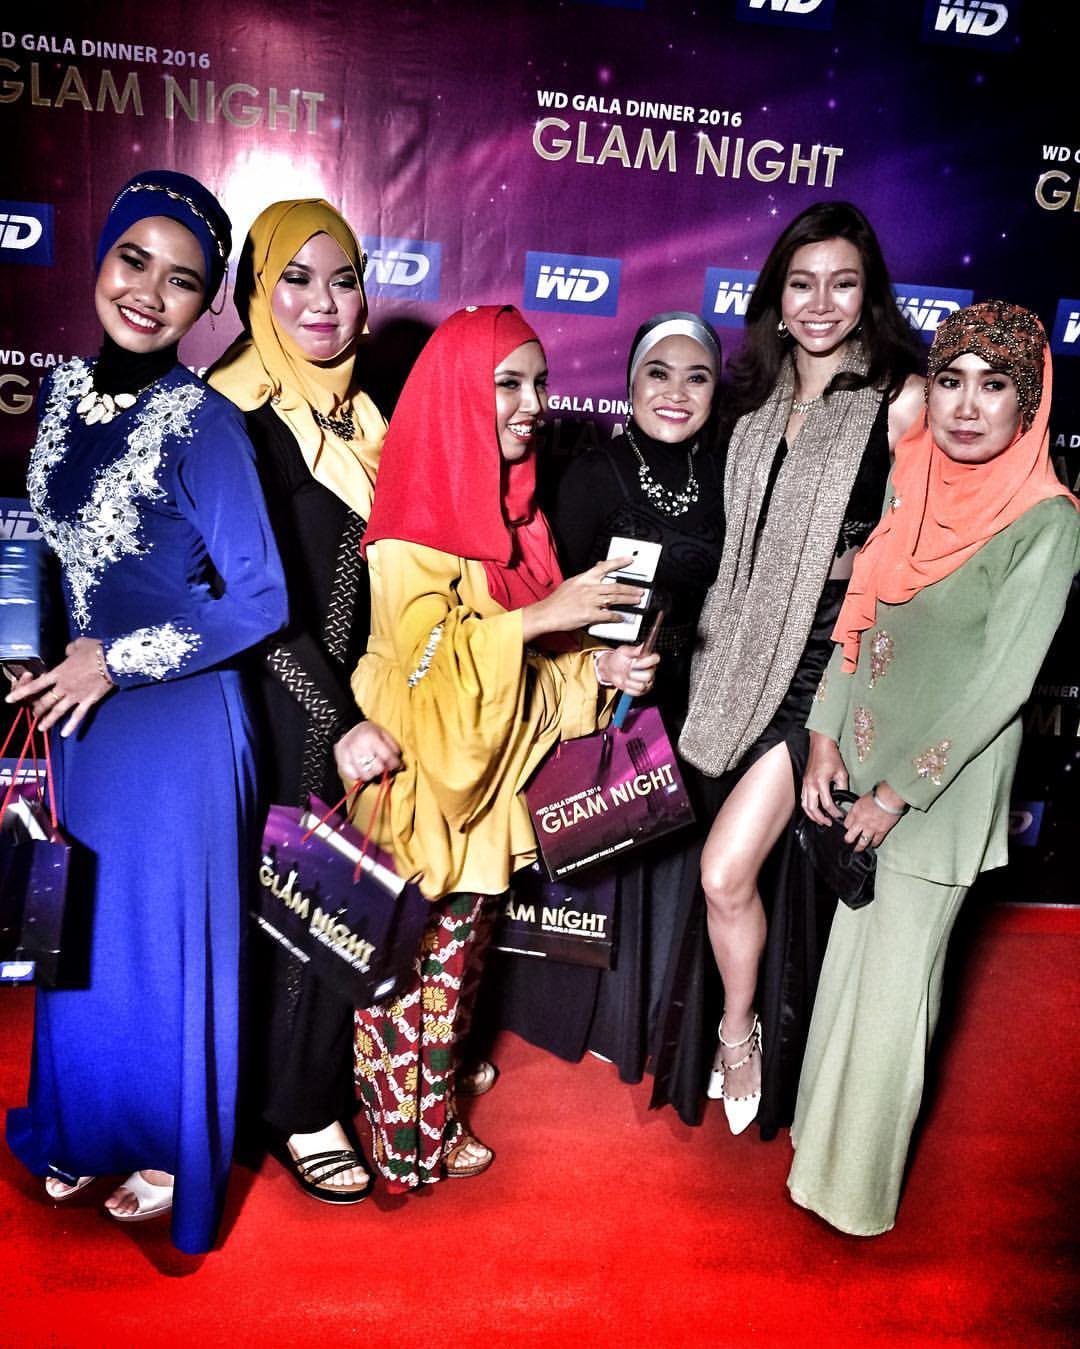 WD Glam Night